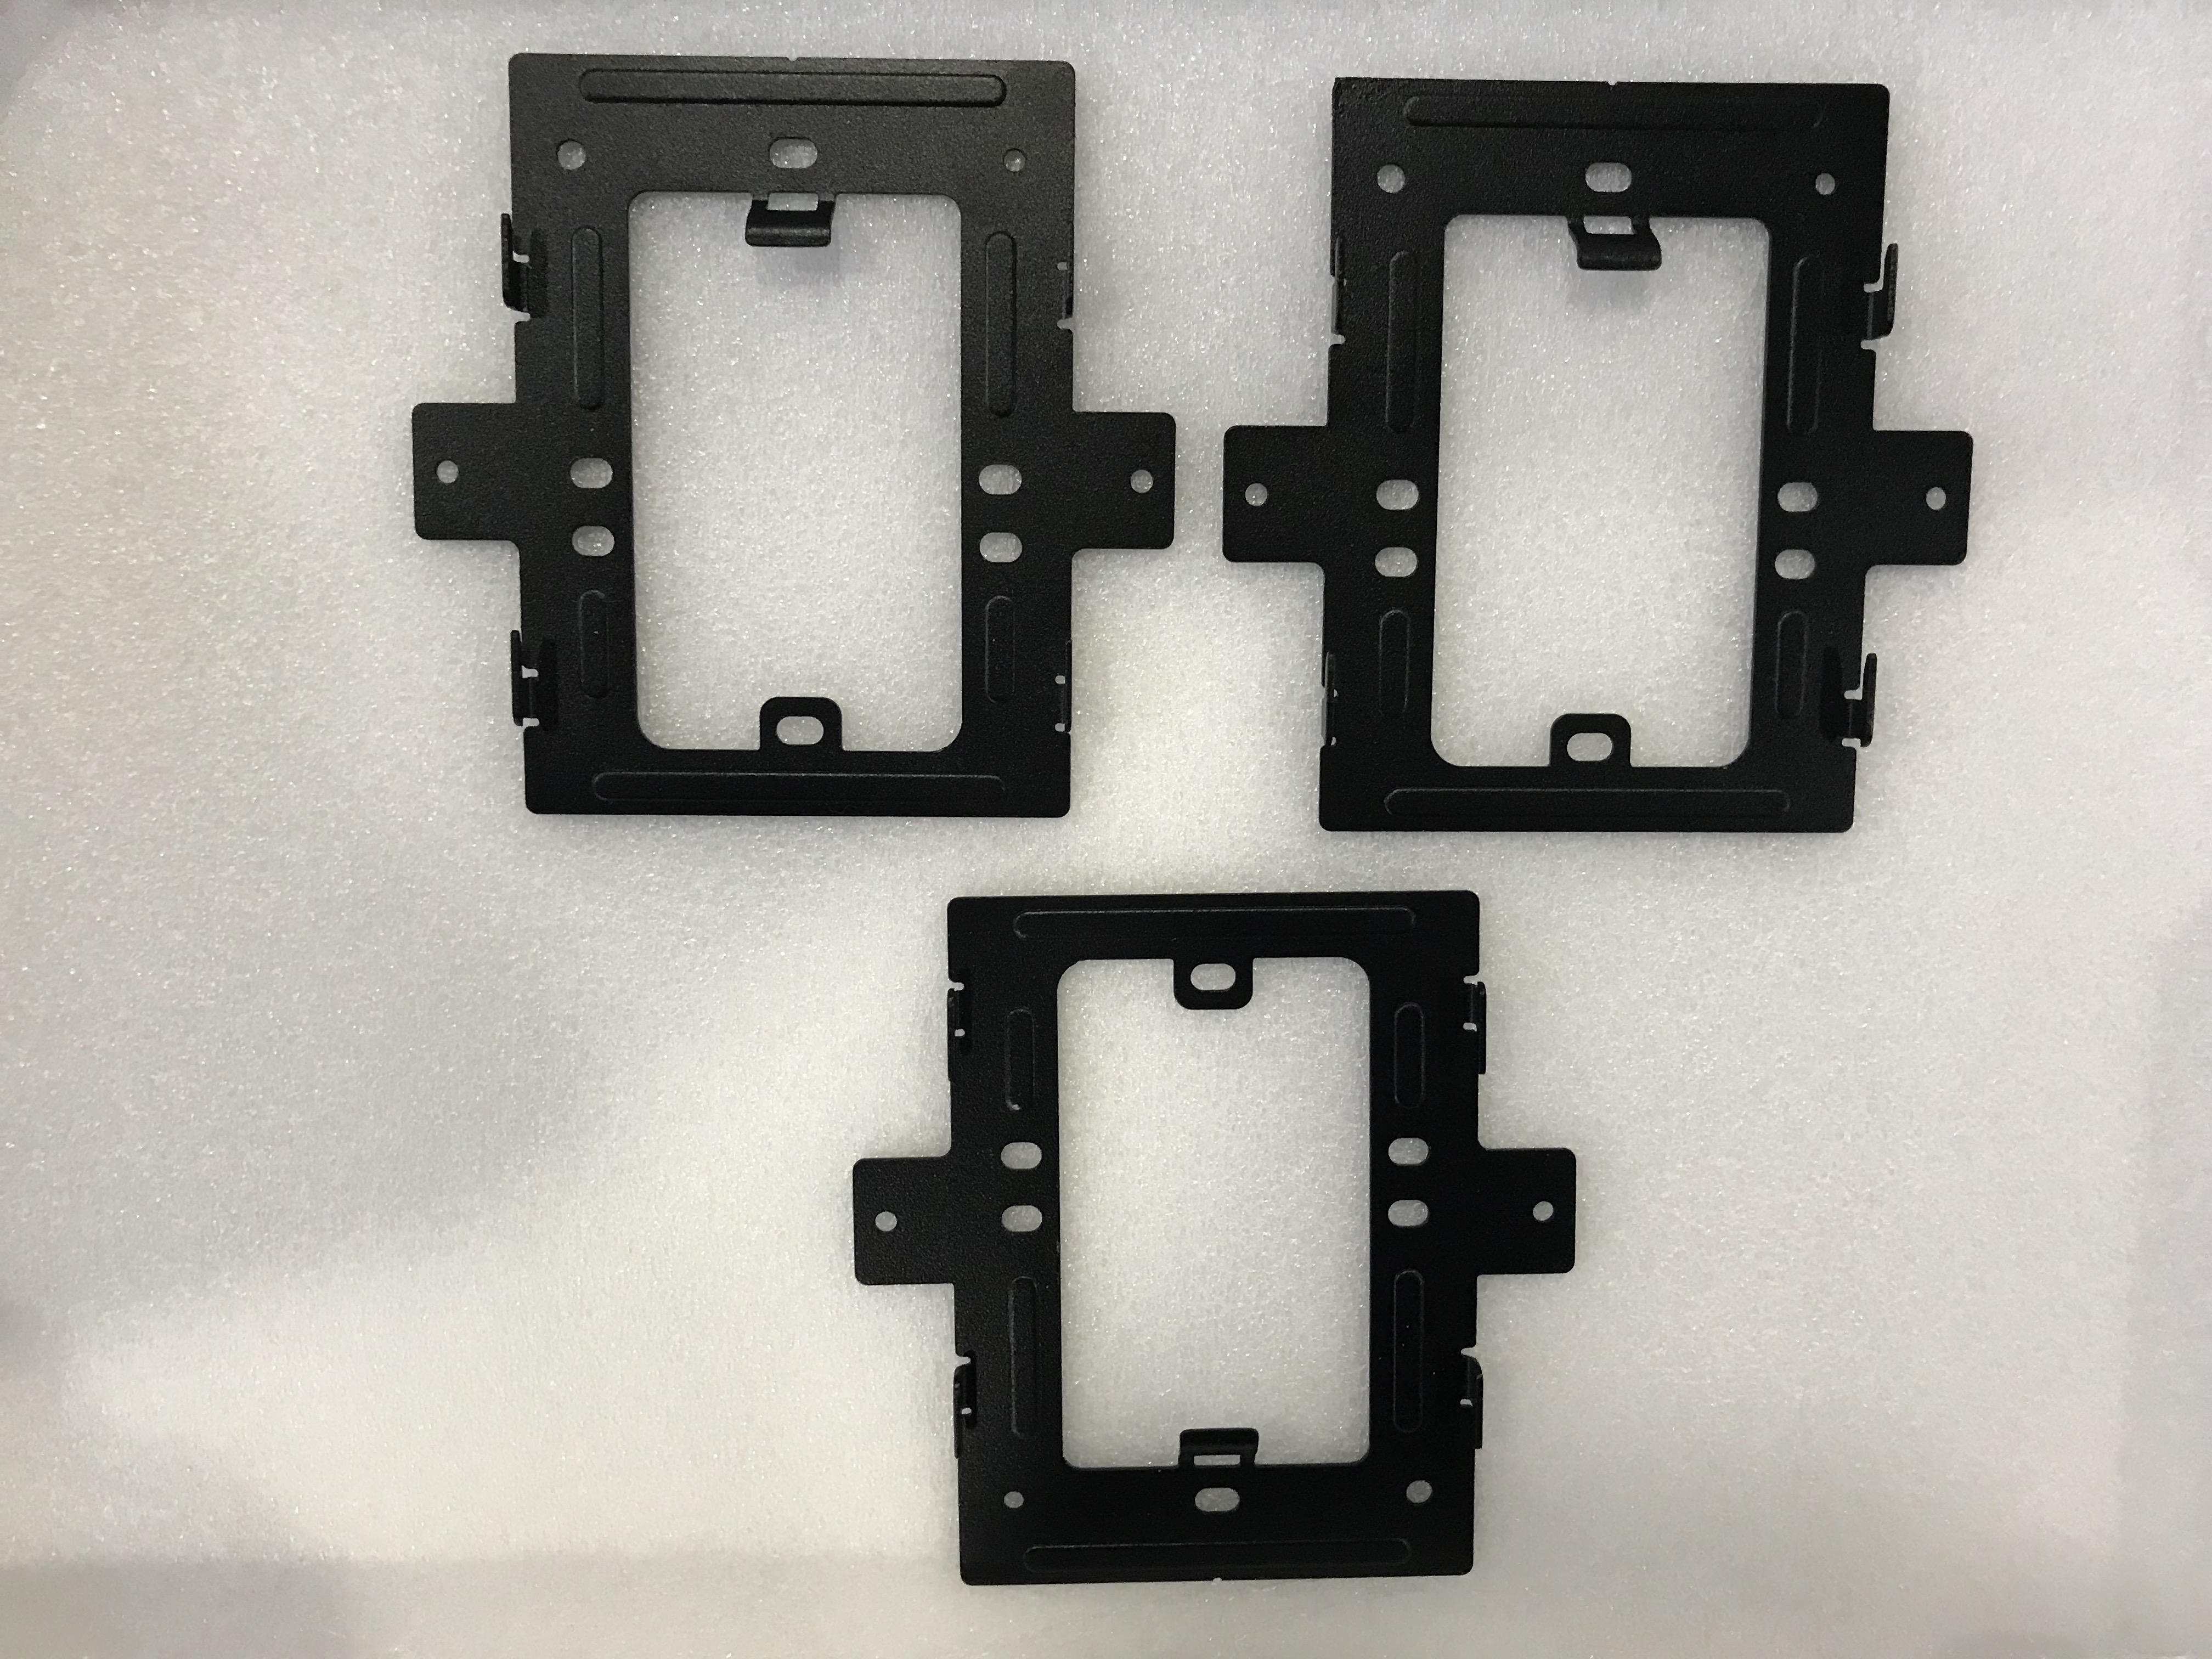 VTM121 Mounting brackets for VTH1510A/VTH1520A|Intercom Accessories| |  - title=